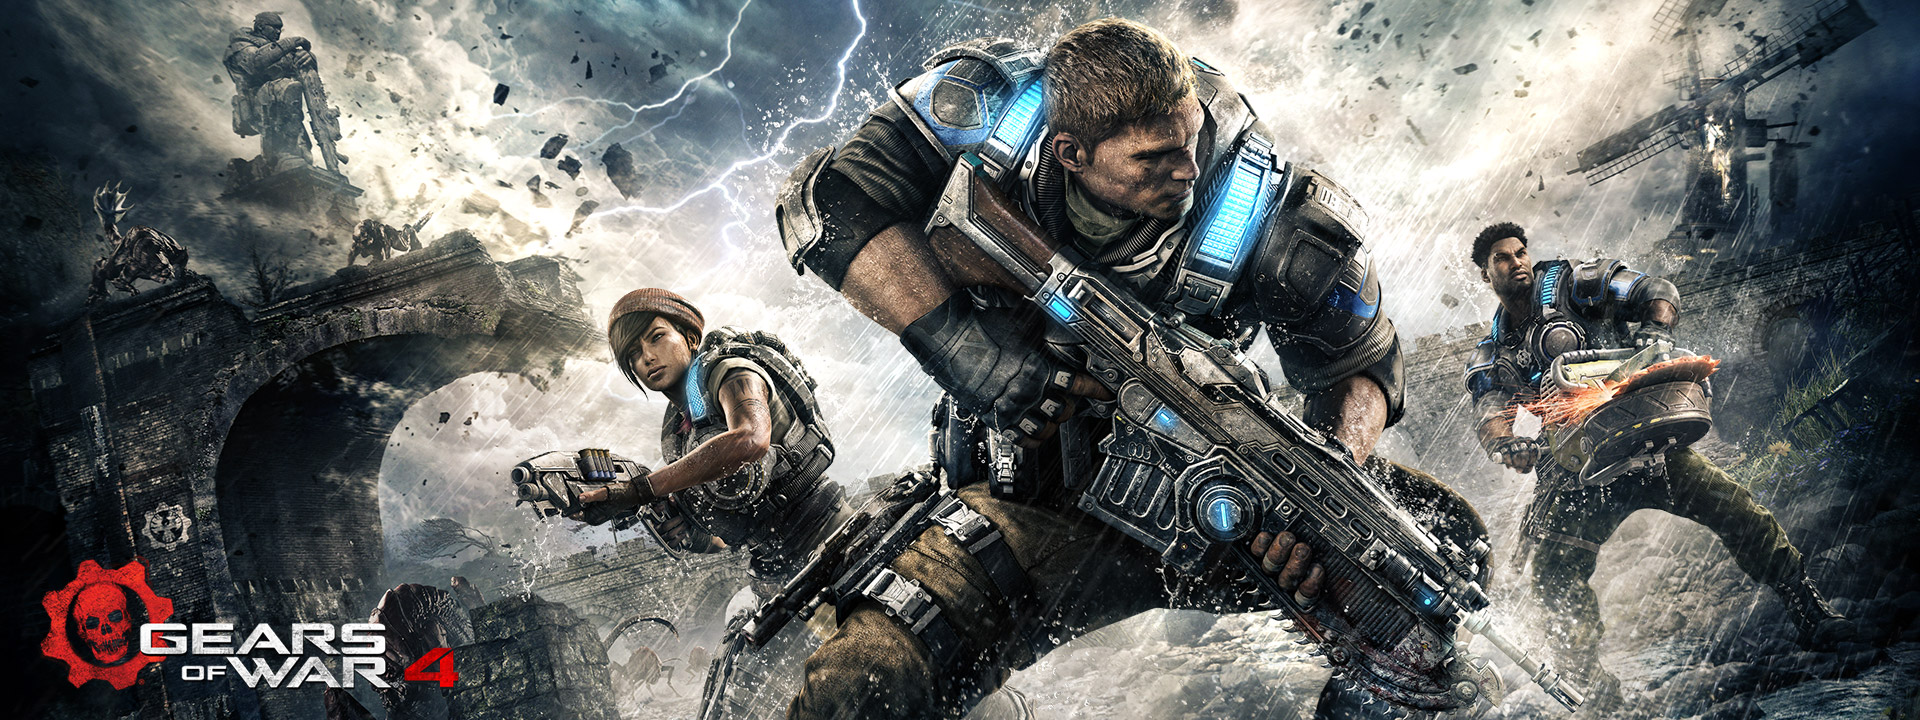 Gears of War 4 Titelbild